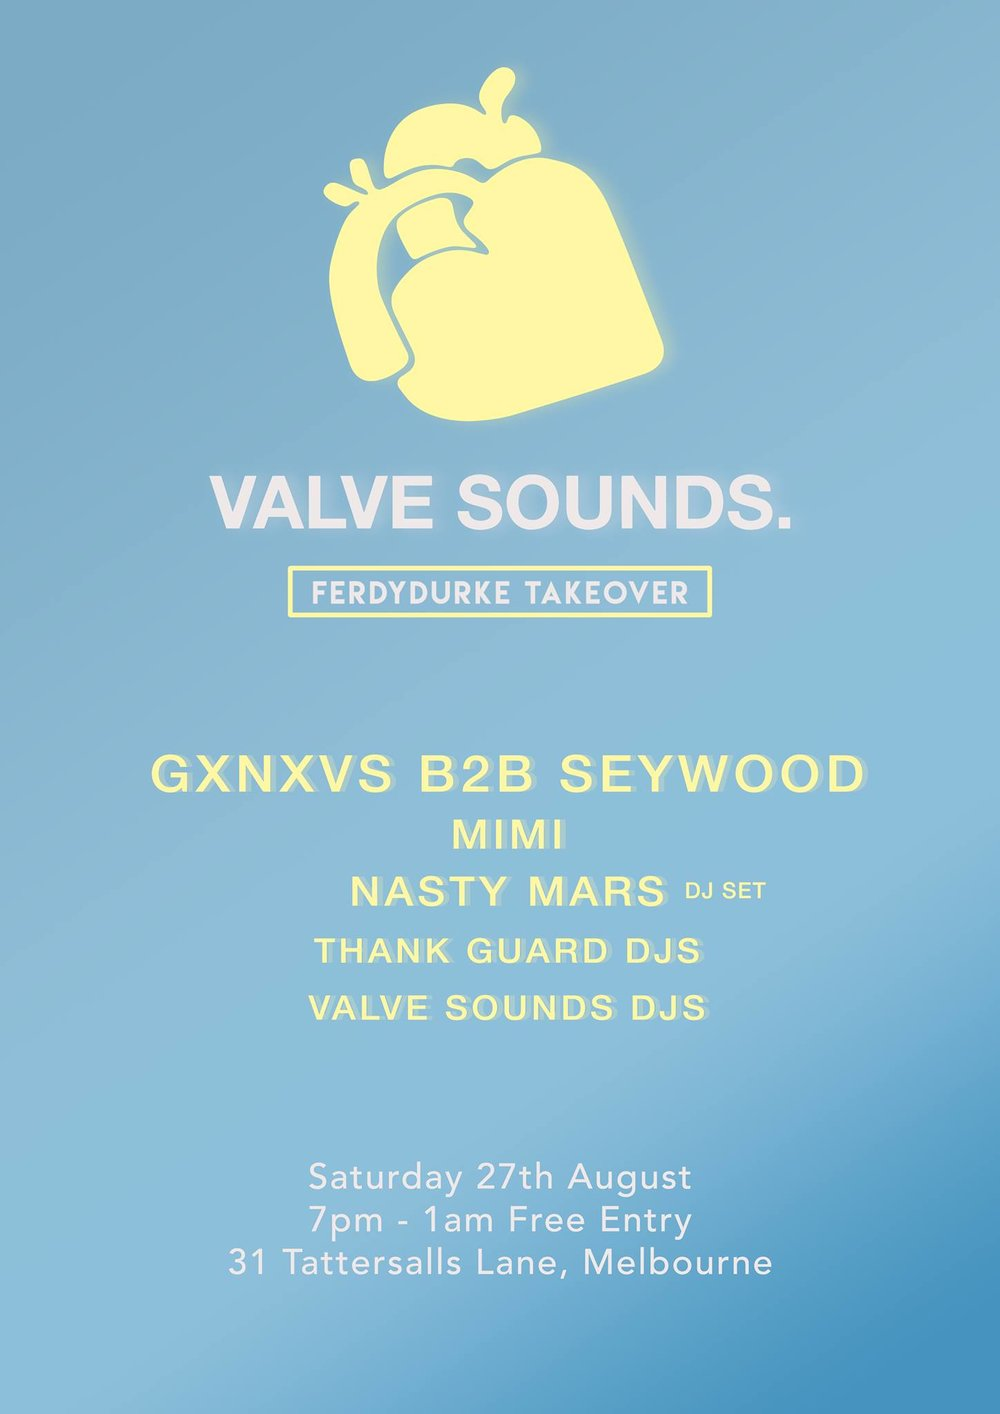 VALVE SOUNDS FERDYDURKE TAKEOVER - -------------------------------------------------------Featuring: GXNXVS b2b SEYWOODMIMINasty Mars and The Martians (DJ SET)THANK GUARD DJSValve Sounds DJS-------------------------------------------------------7pm - 1amFree entry all night